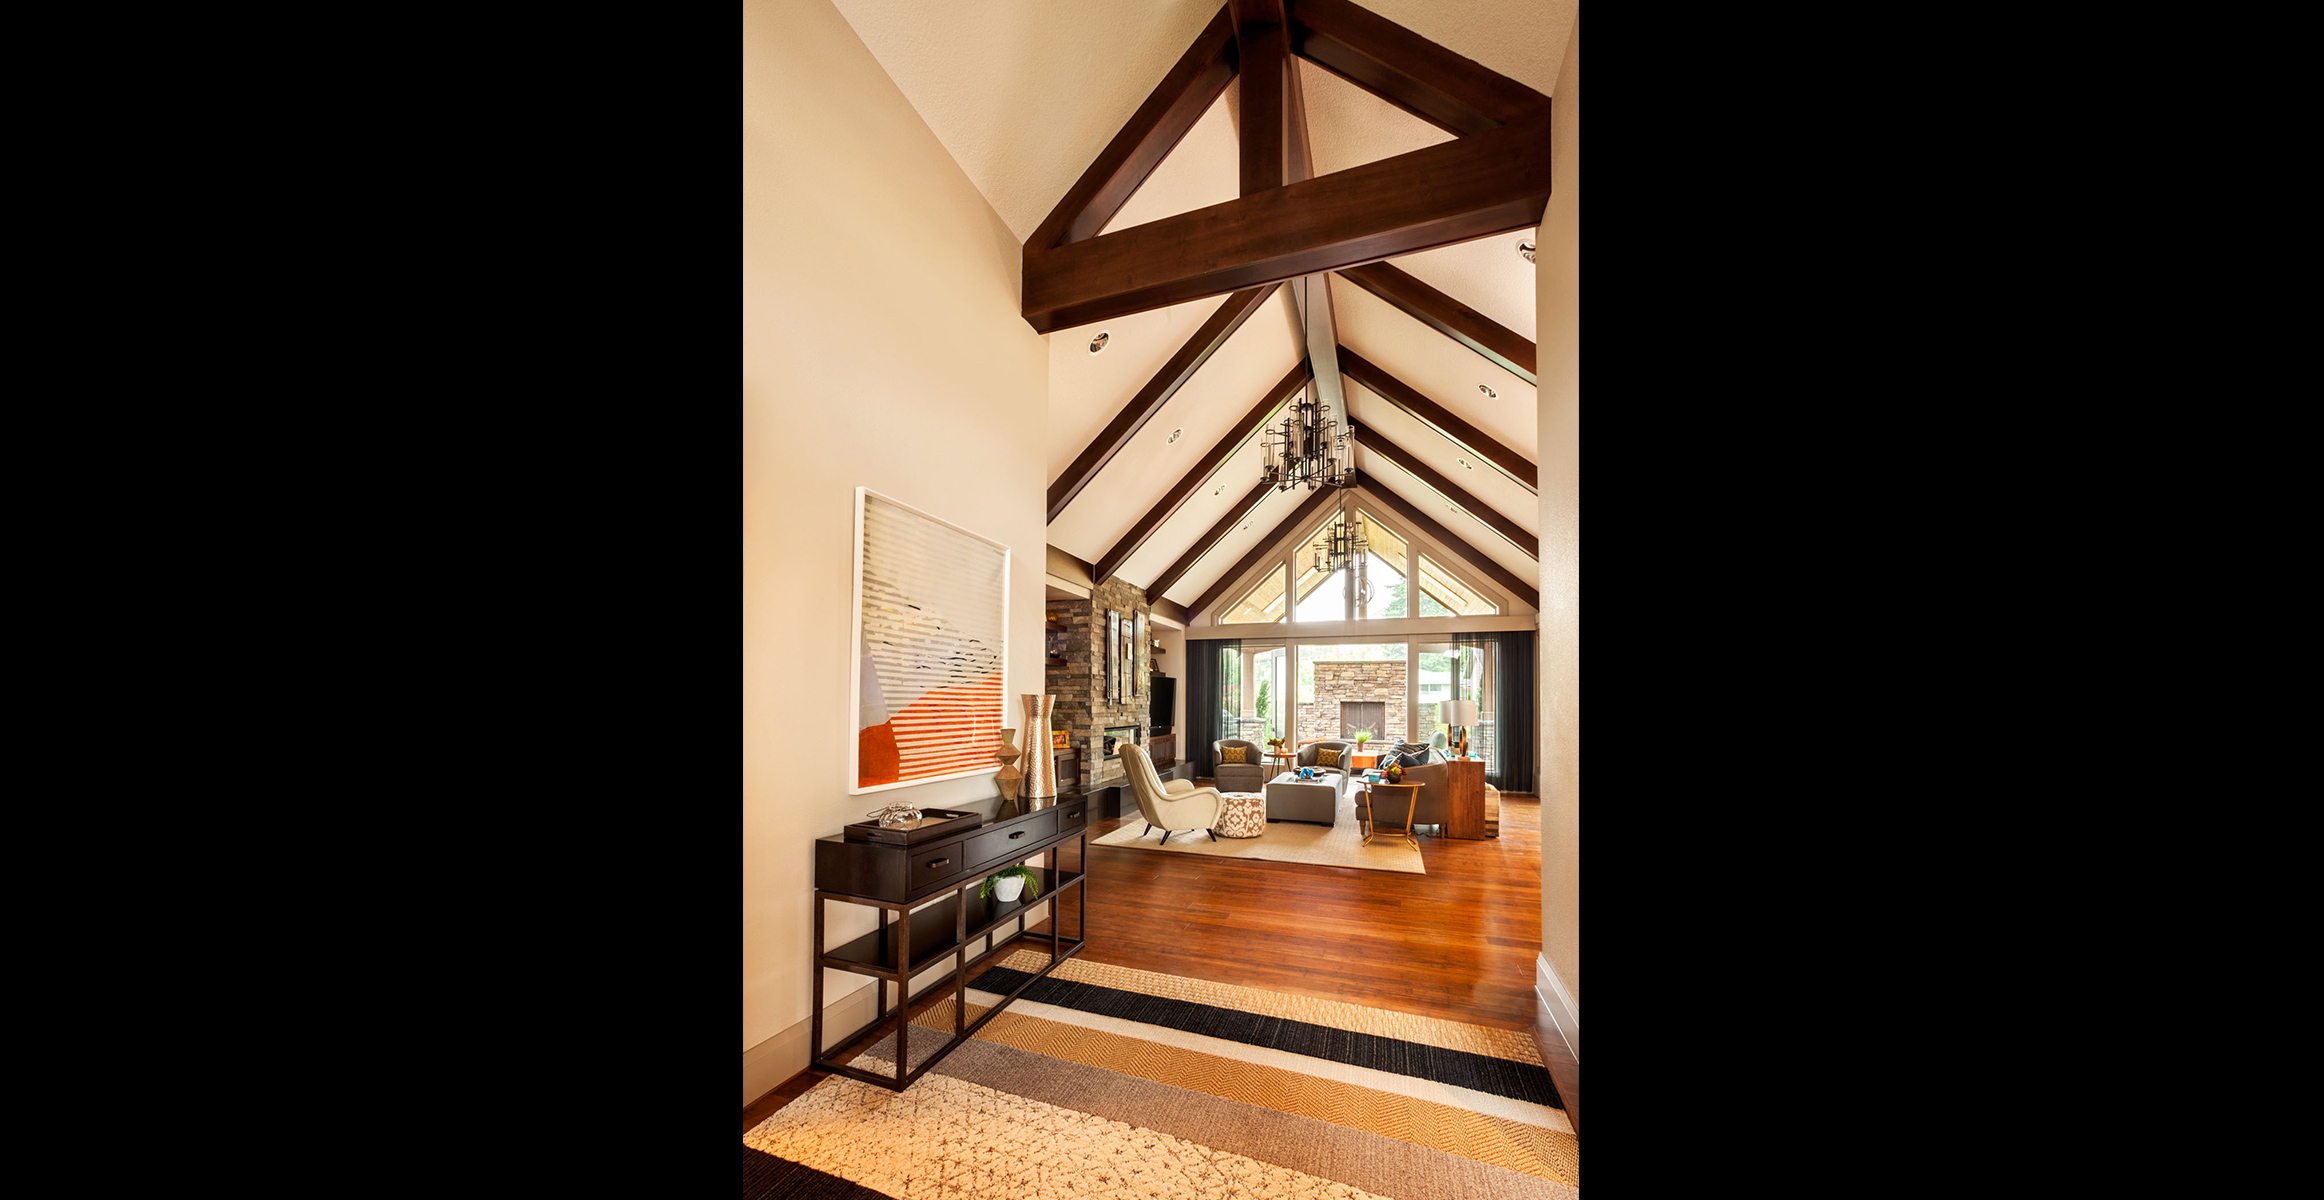 Large wooden beams are the focus of this high ceiling entry hall